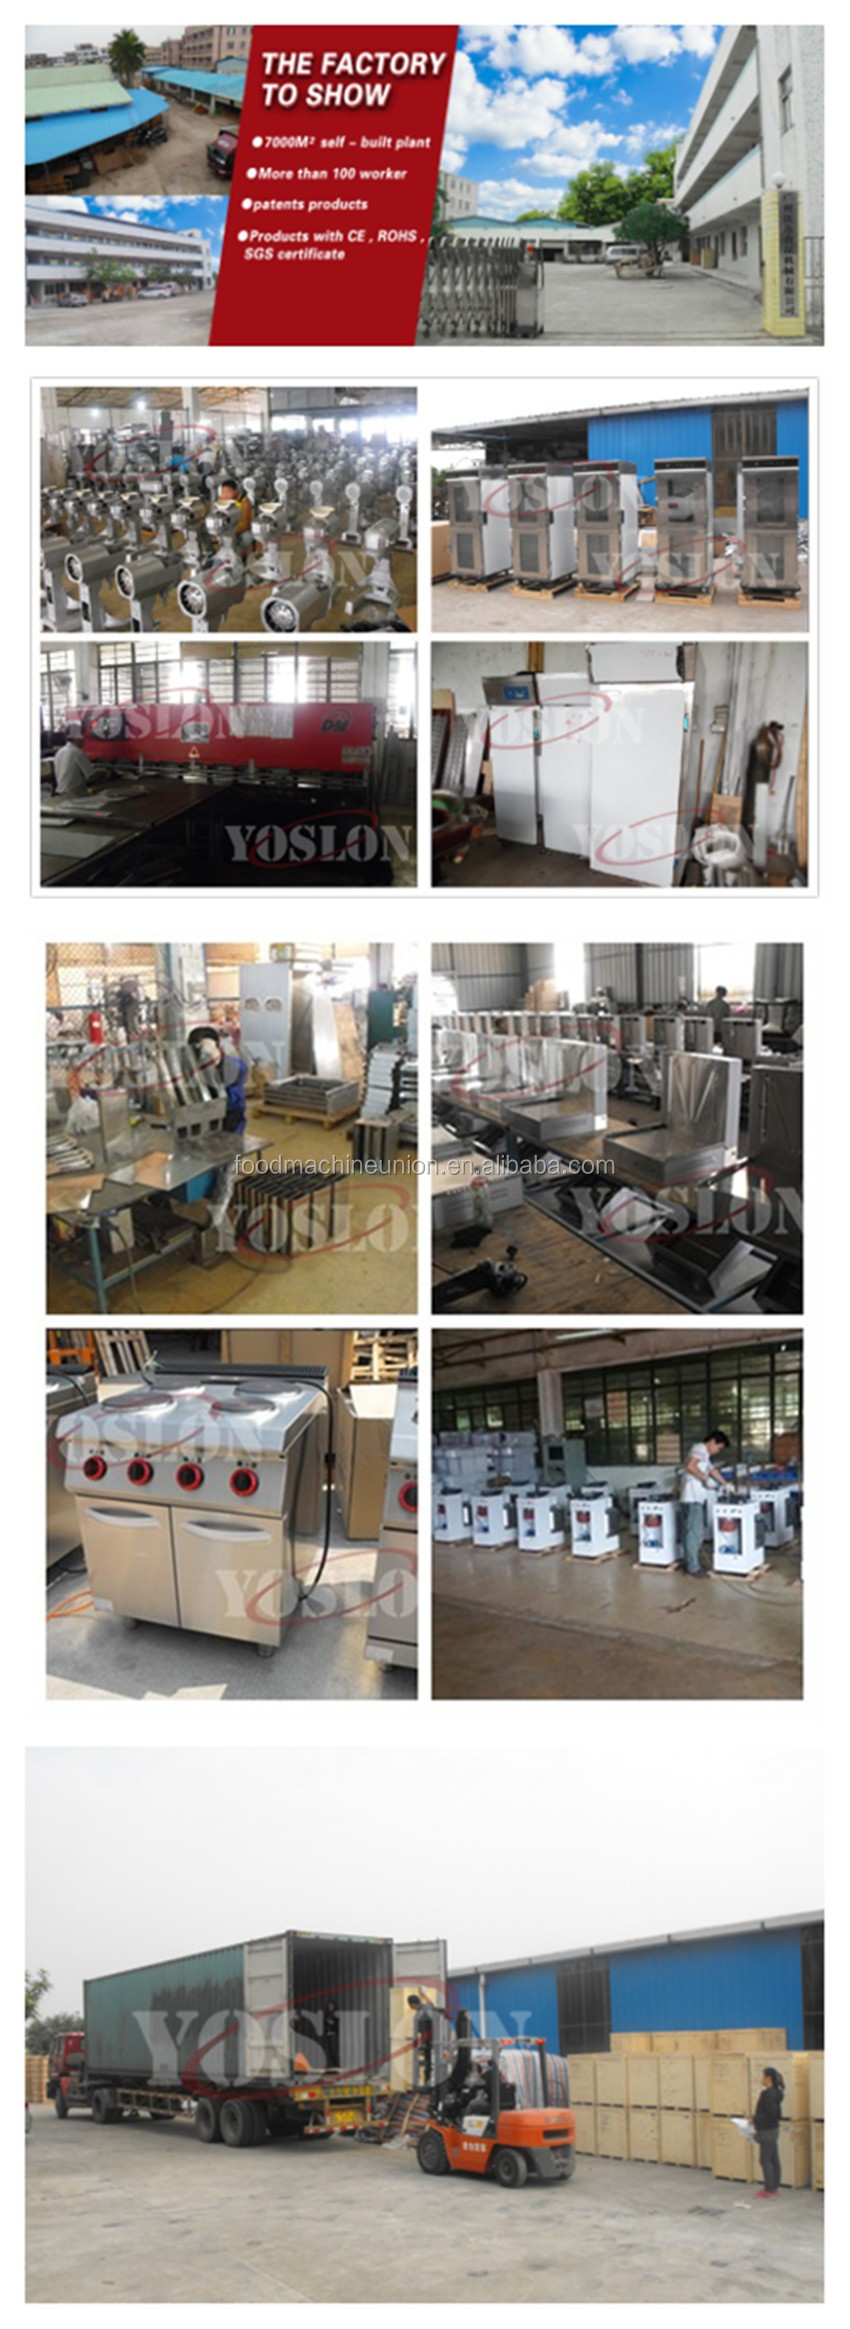 YOSLON hot sale 32trays proofer with automatic termostat from China